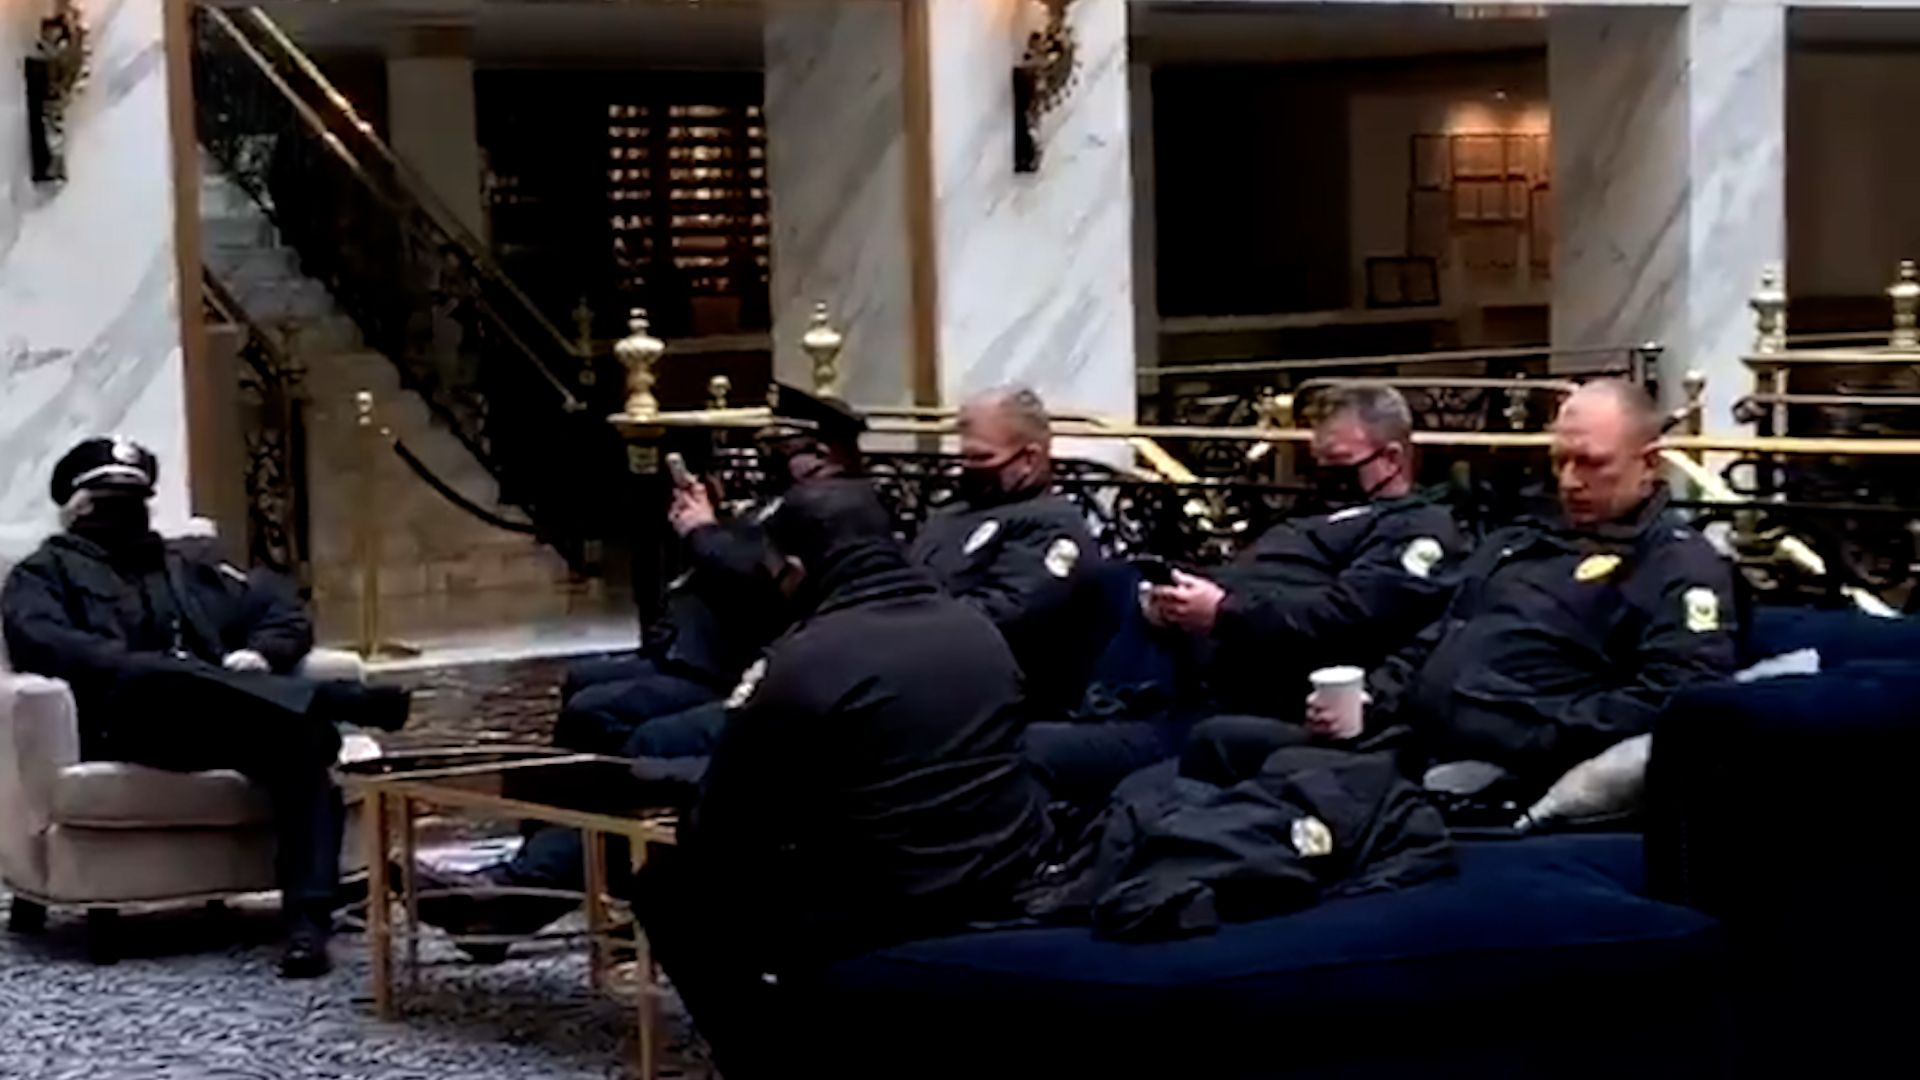 WATCH: Trump allows police to rest at Trump Hotel while Democrats force National Guard to sleep in parking garages